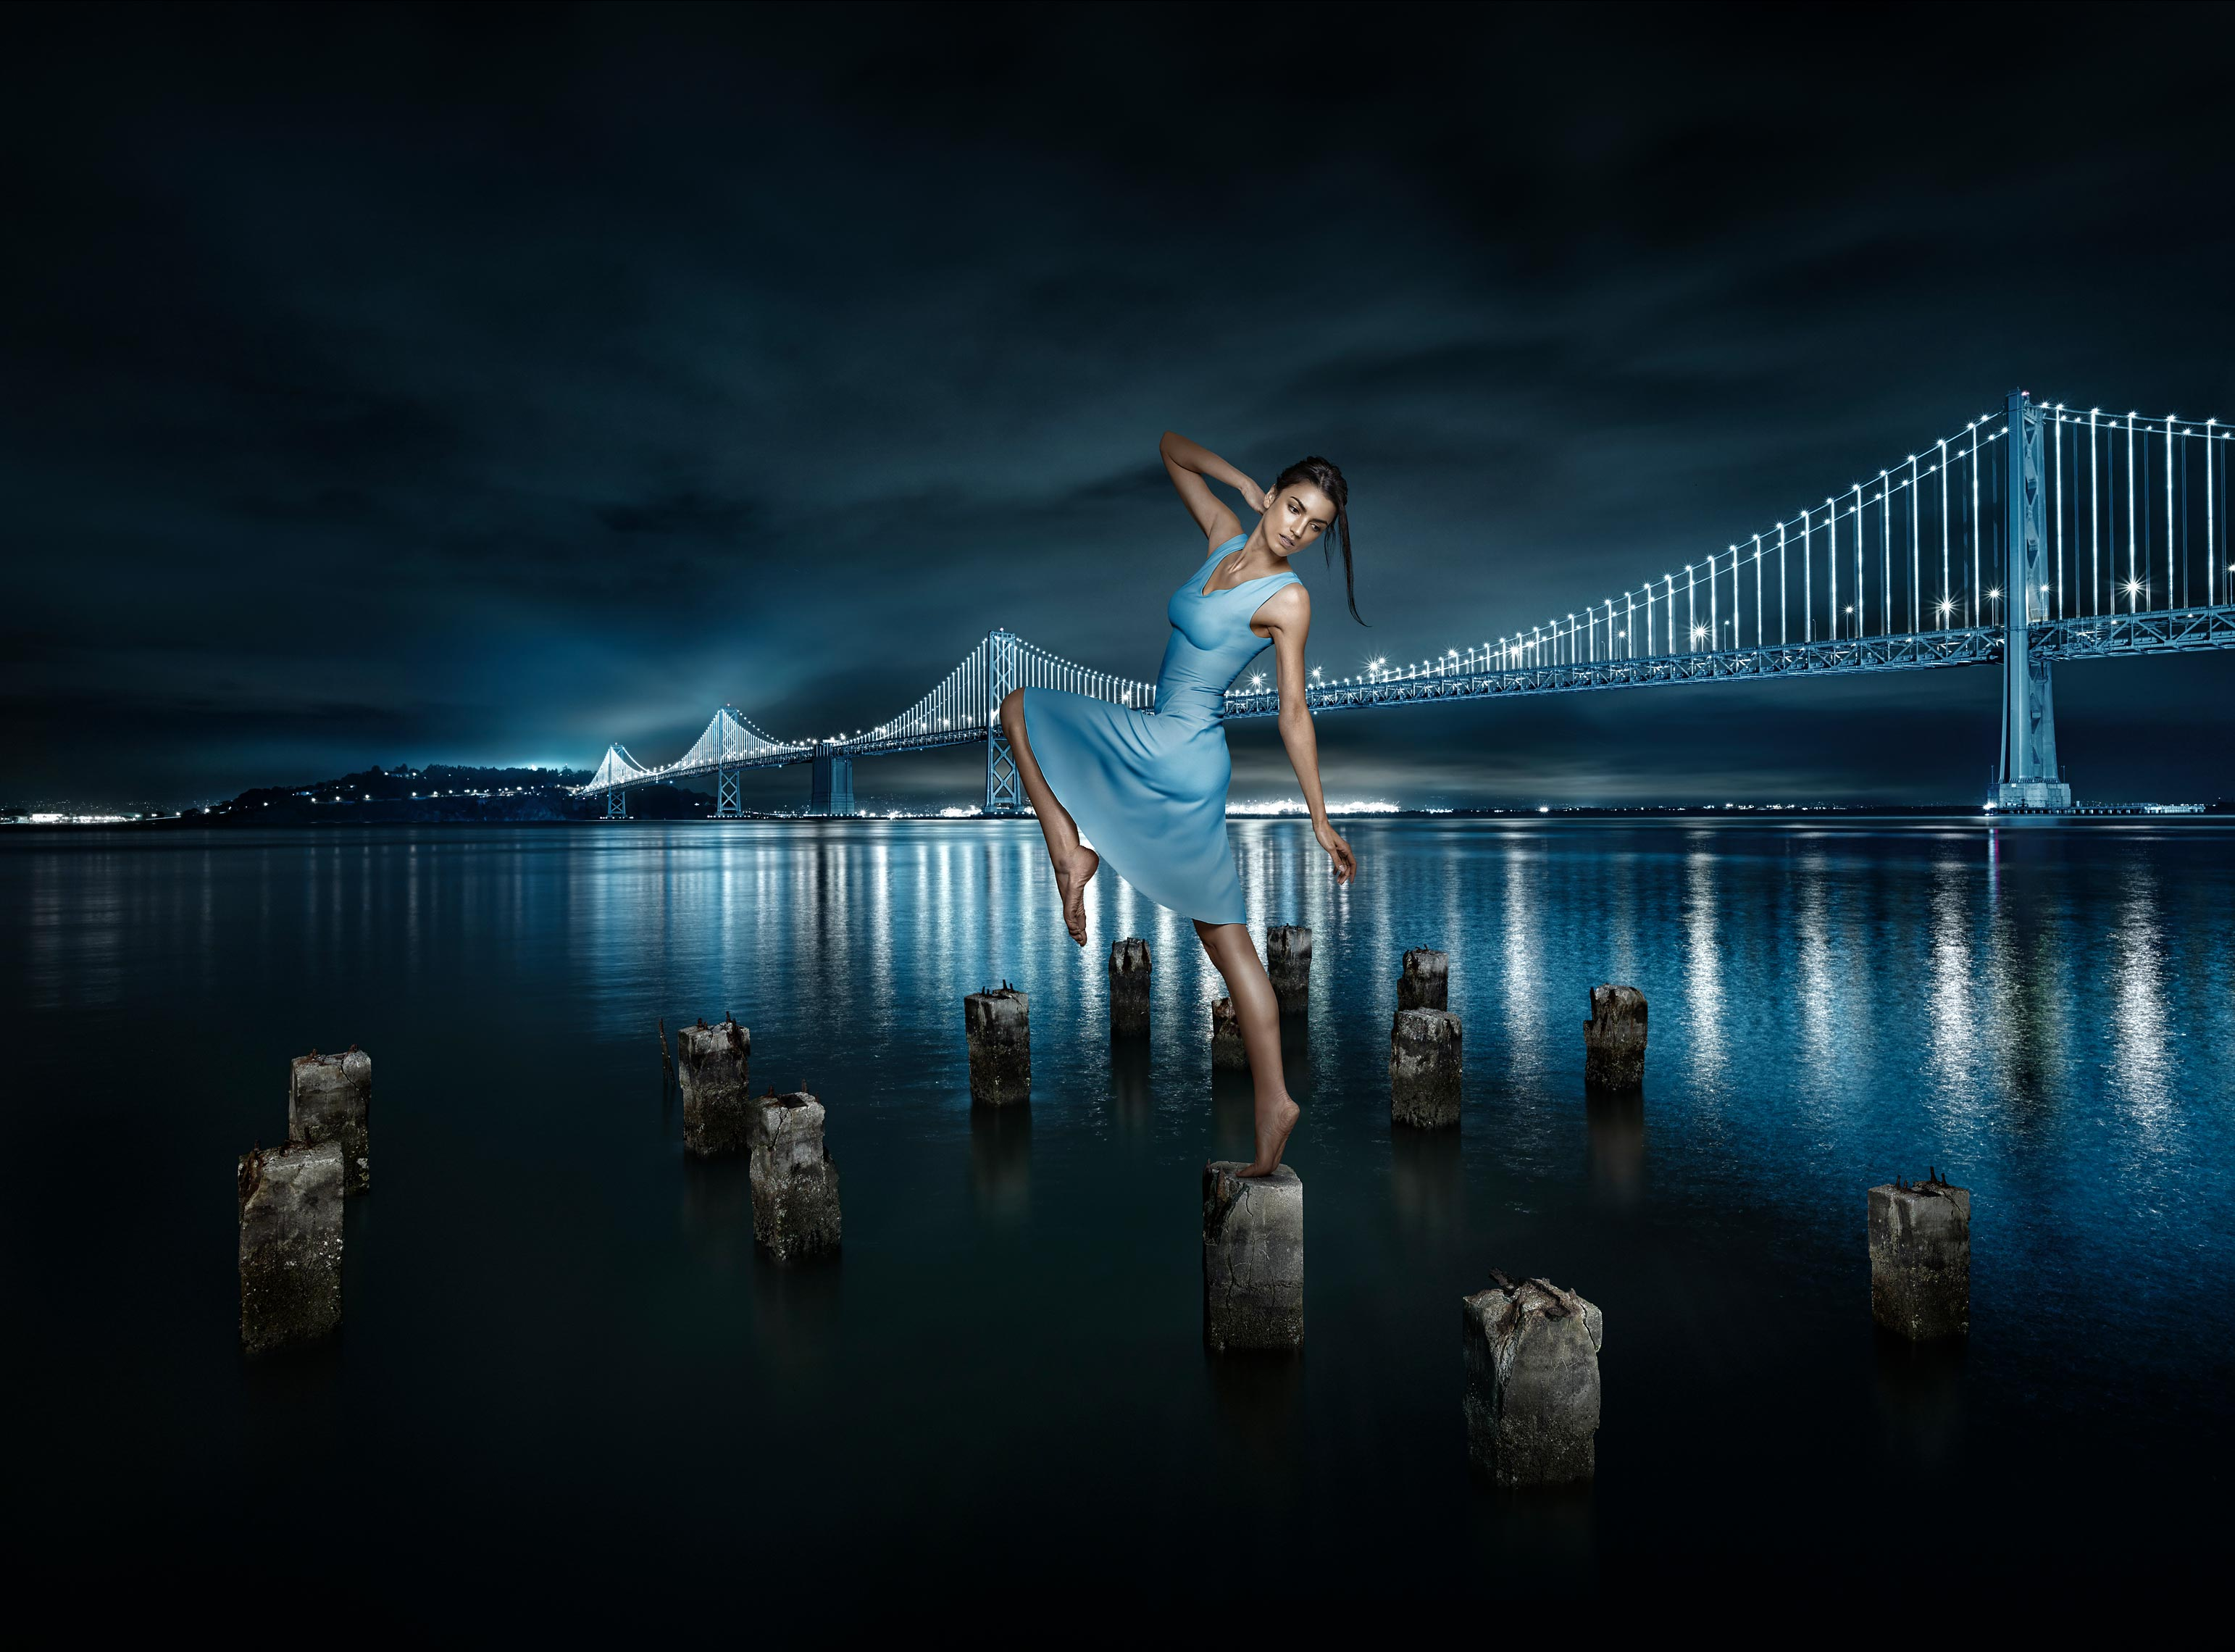 BAY-BRIDGE_Dancer-01